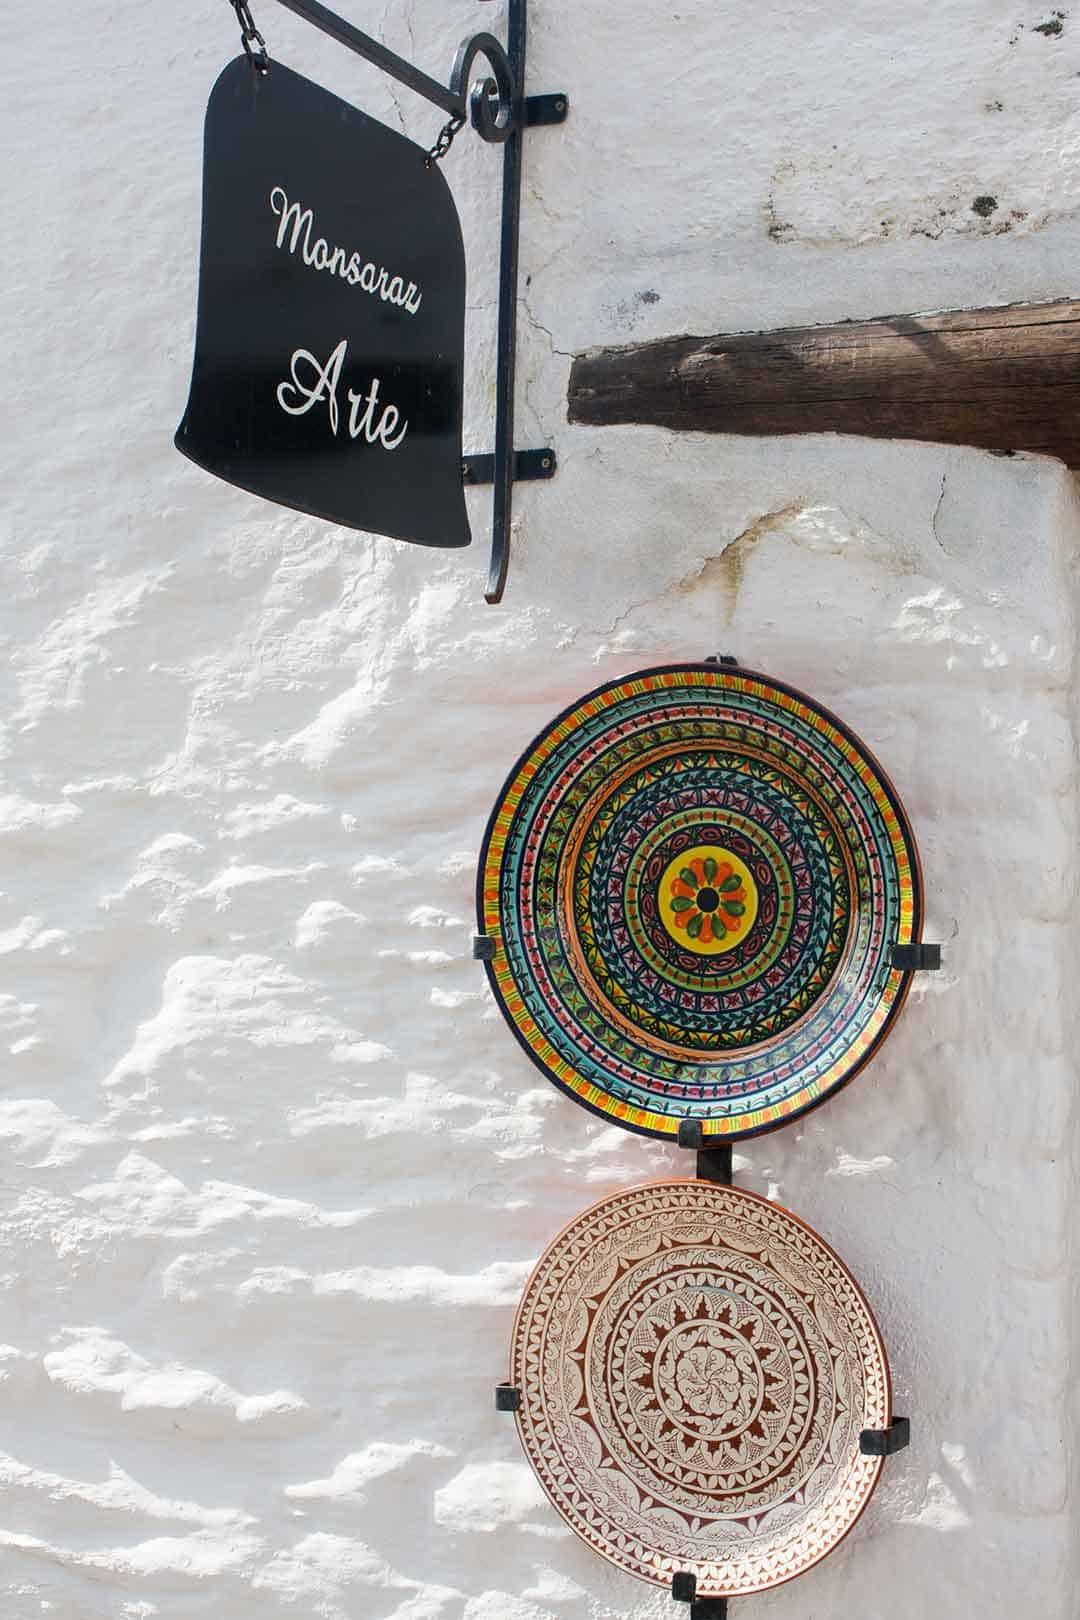 Image of Traditional ceramic plates at art shop in Monsaraz Portugal